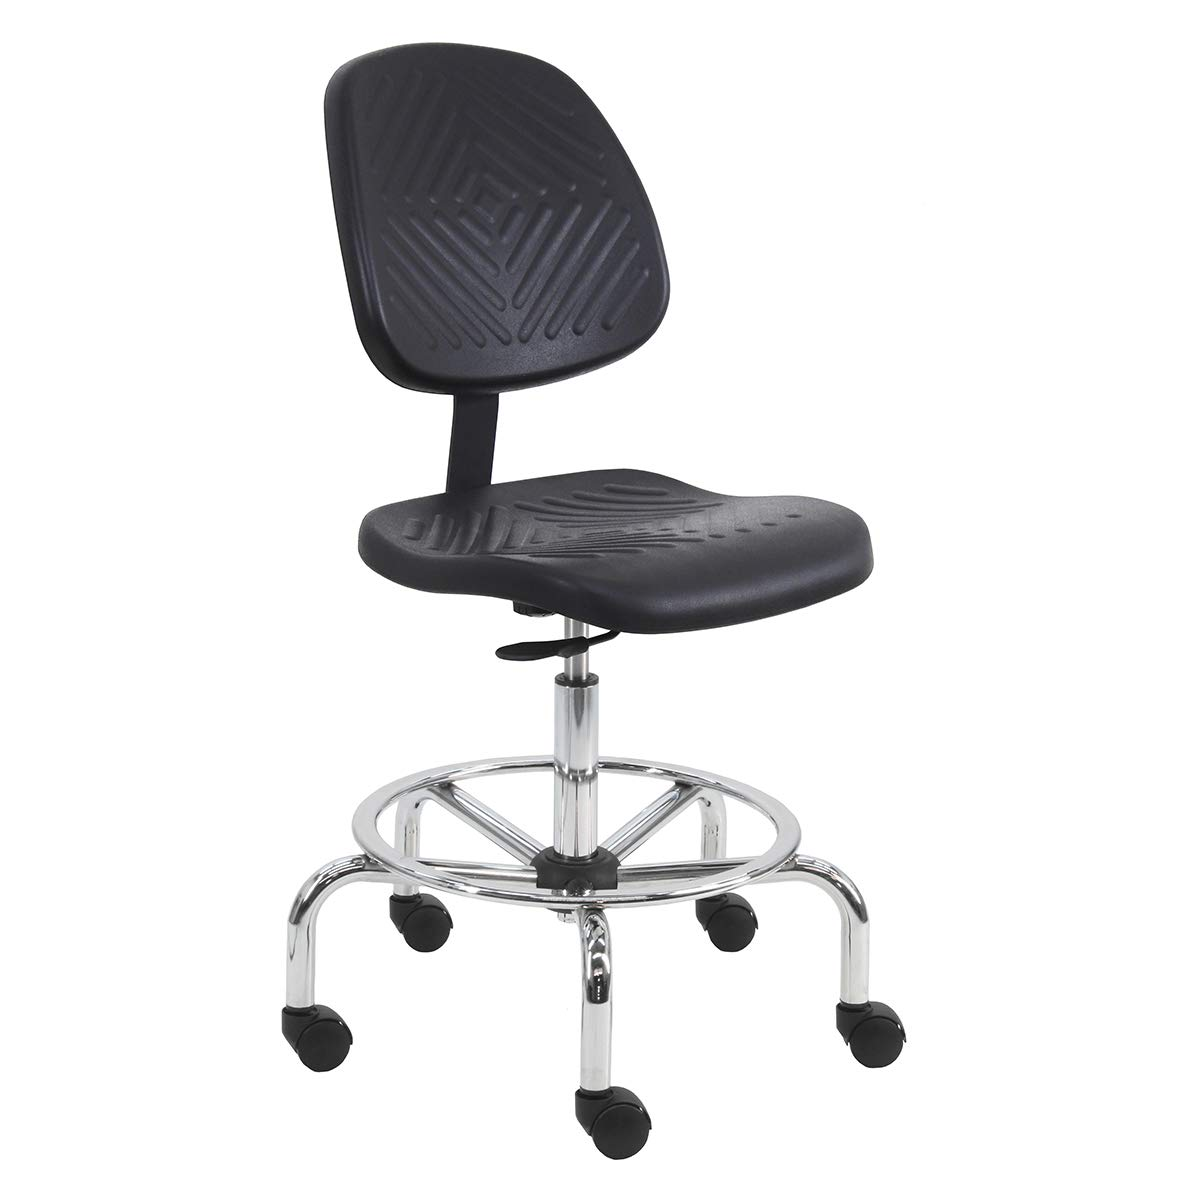 """450 lb Capacity 21-31 Height Adjustment BenchPro Deluxe Urethane Chair with 18/"""" Adjustable Footring and Chrome Base"""